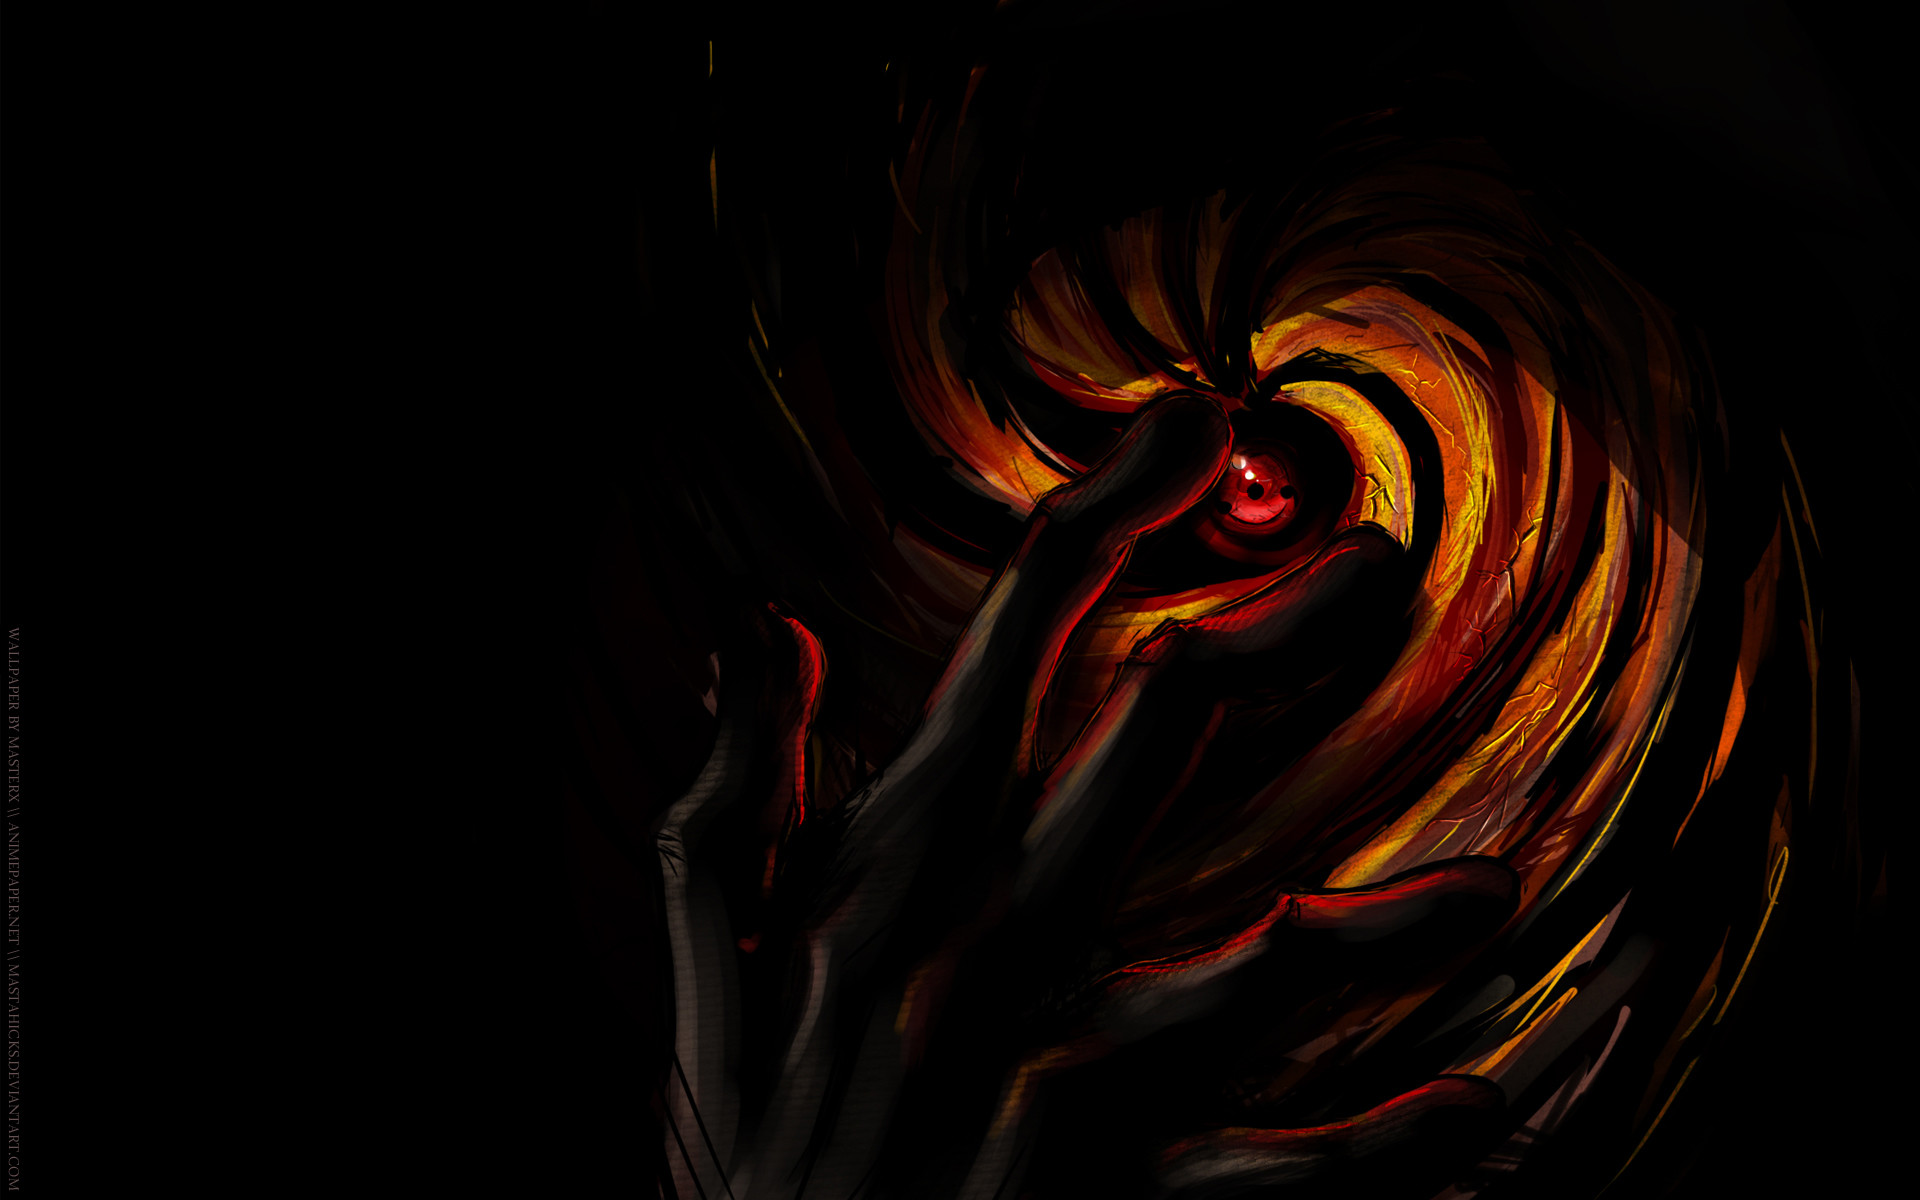 143 Obito Uchiha HD Wallpapers   Backgrounds – Wallpaper Abyss